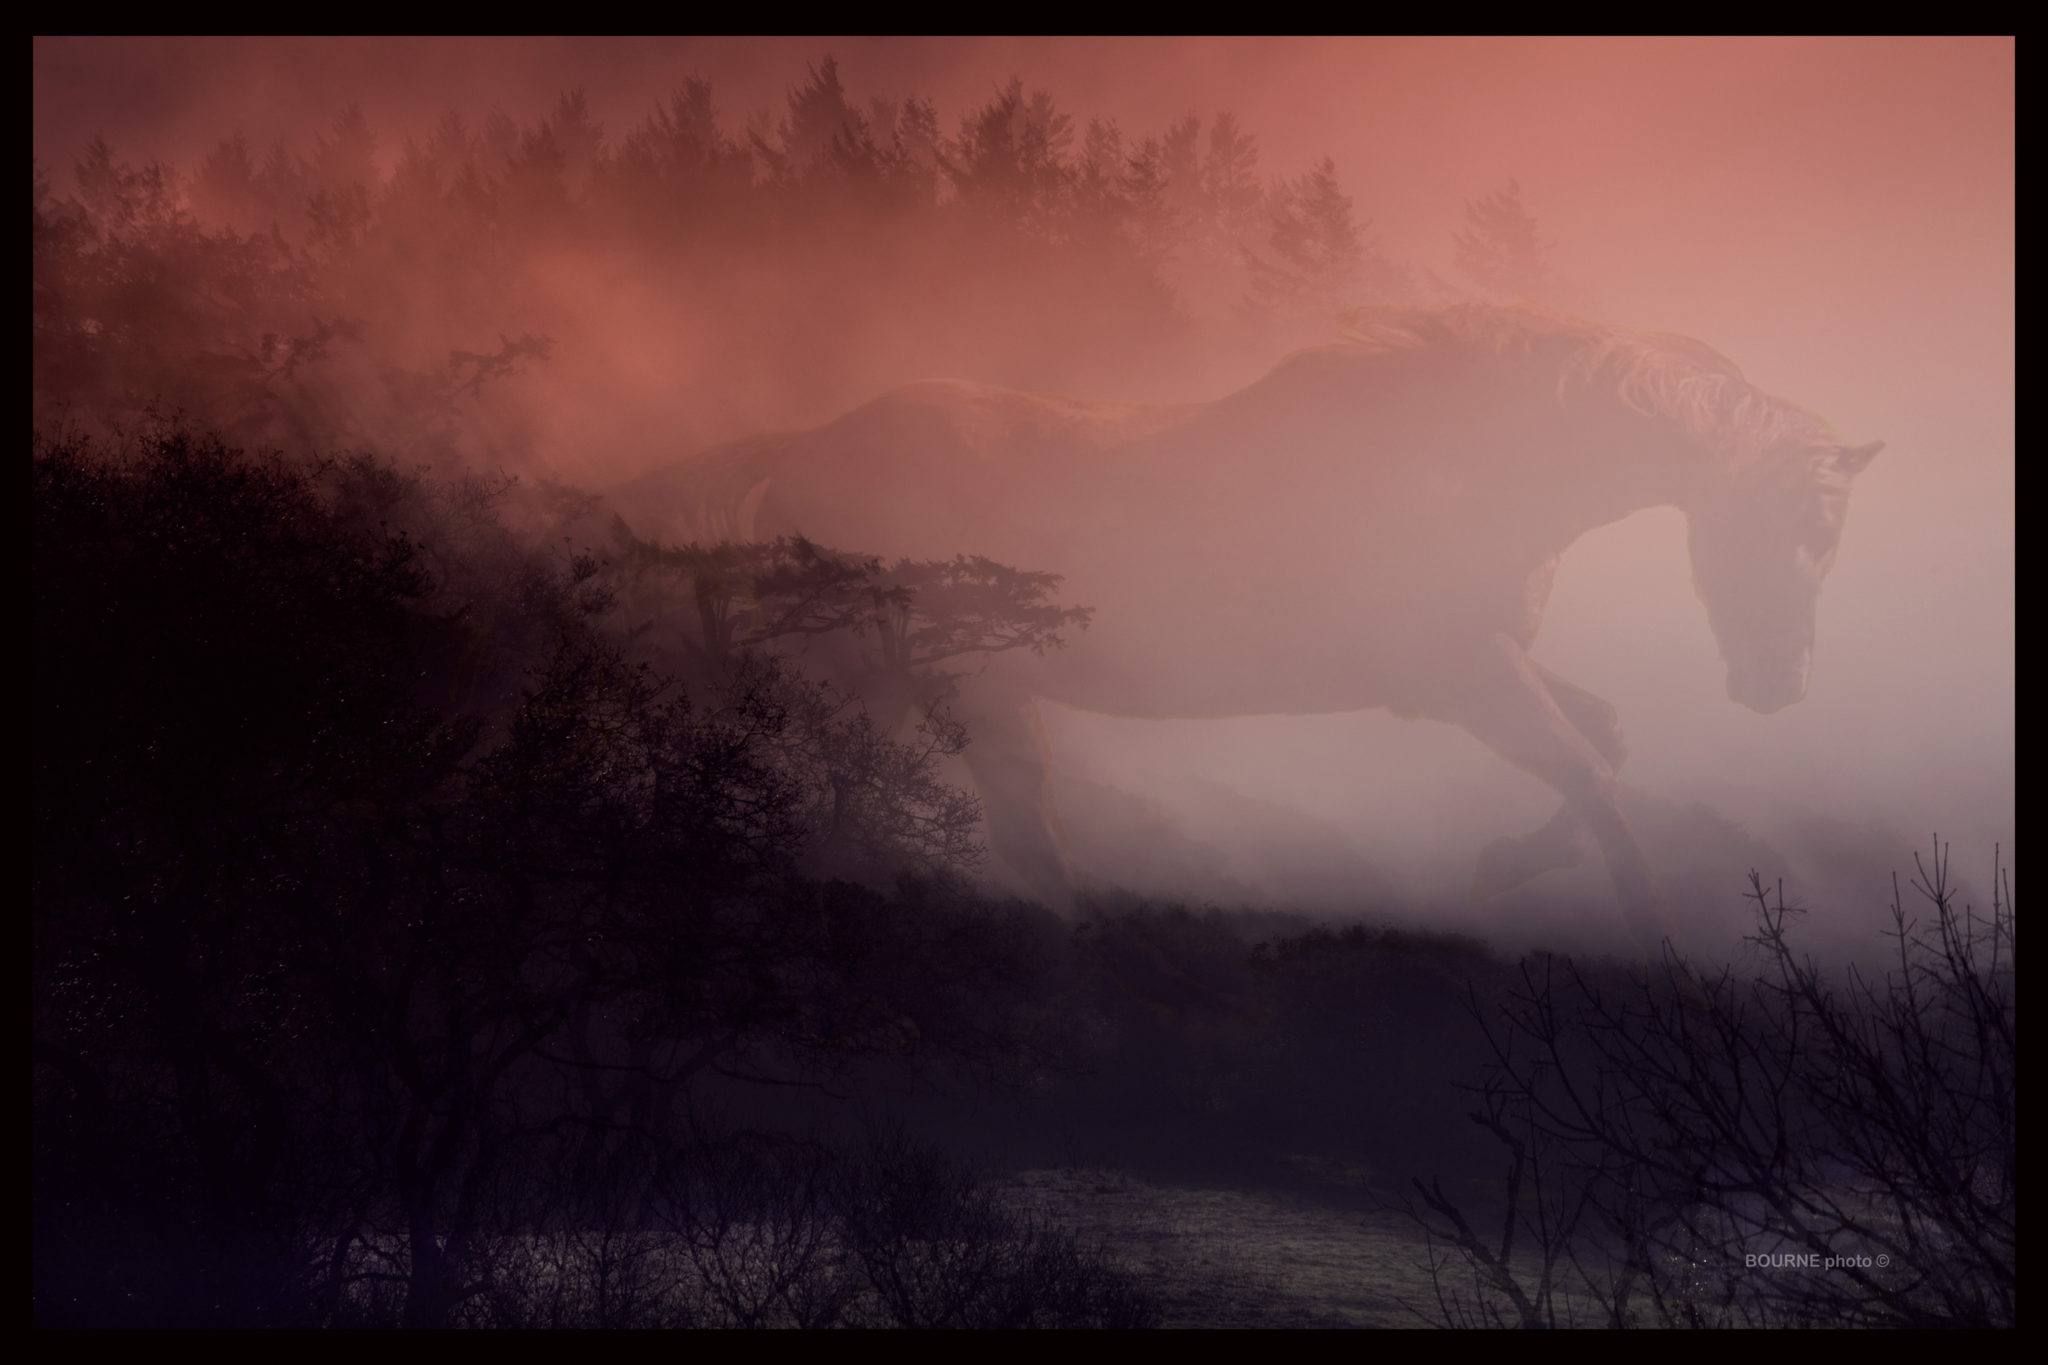 Graceful Horse emerging through mist